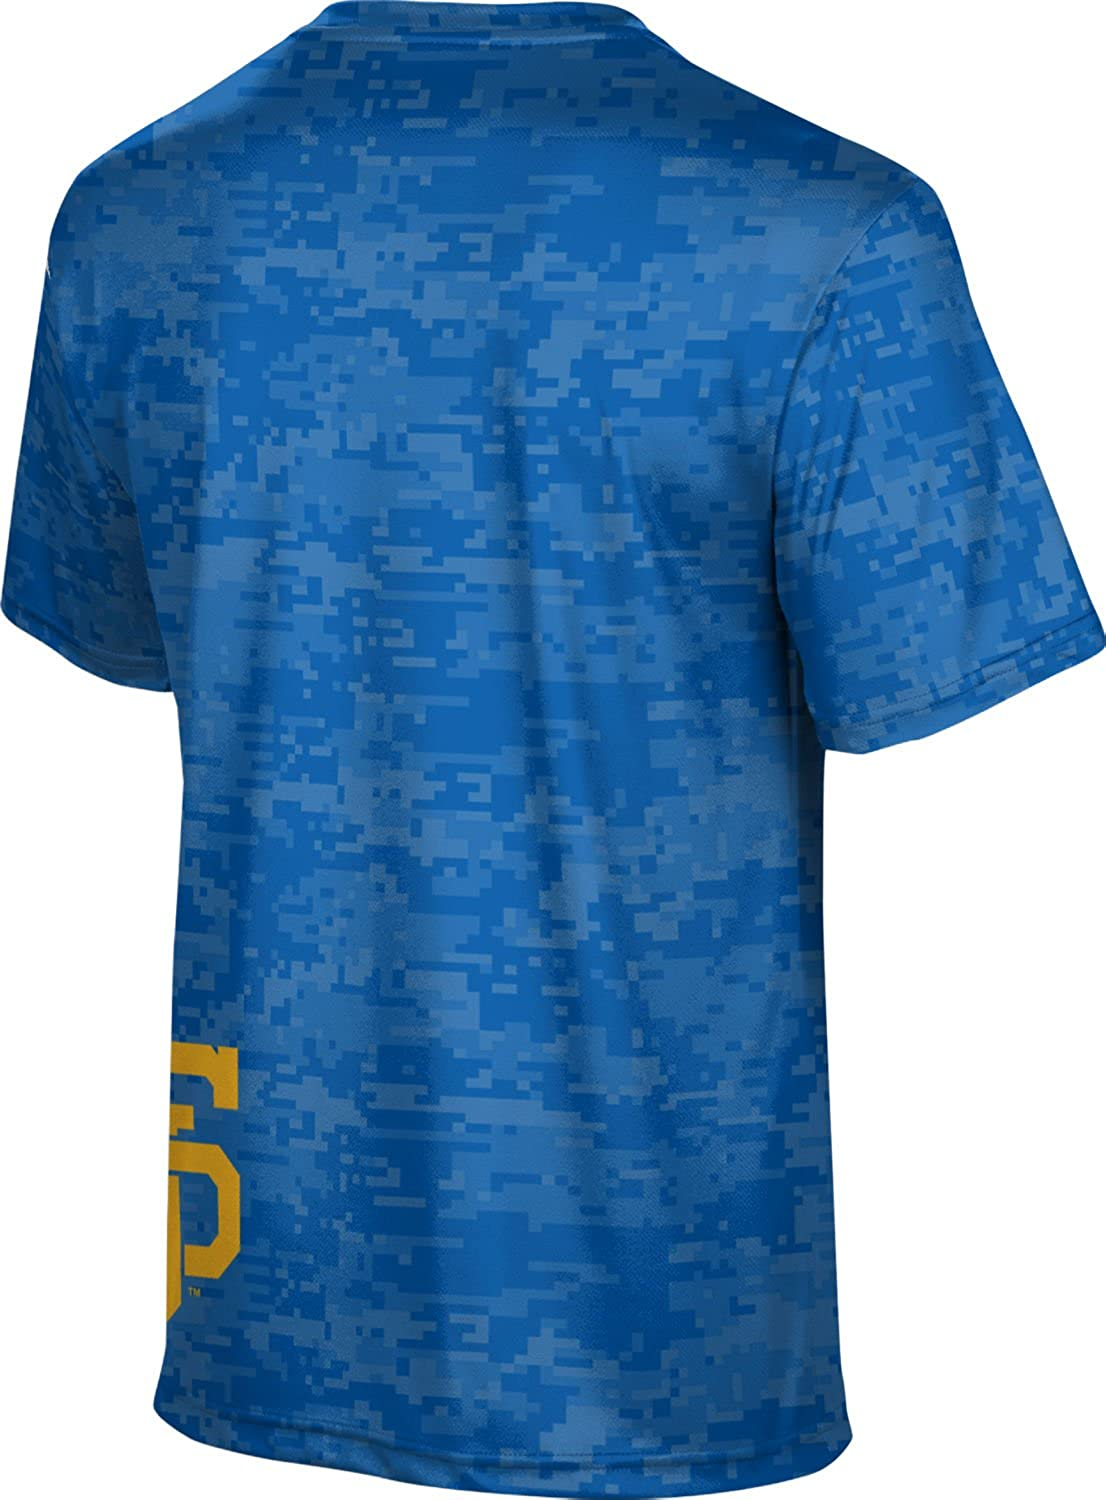 Digi Camo ProSphere San Jose State University Boys Performance T-Shirt